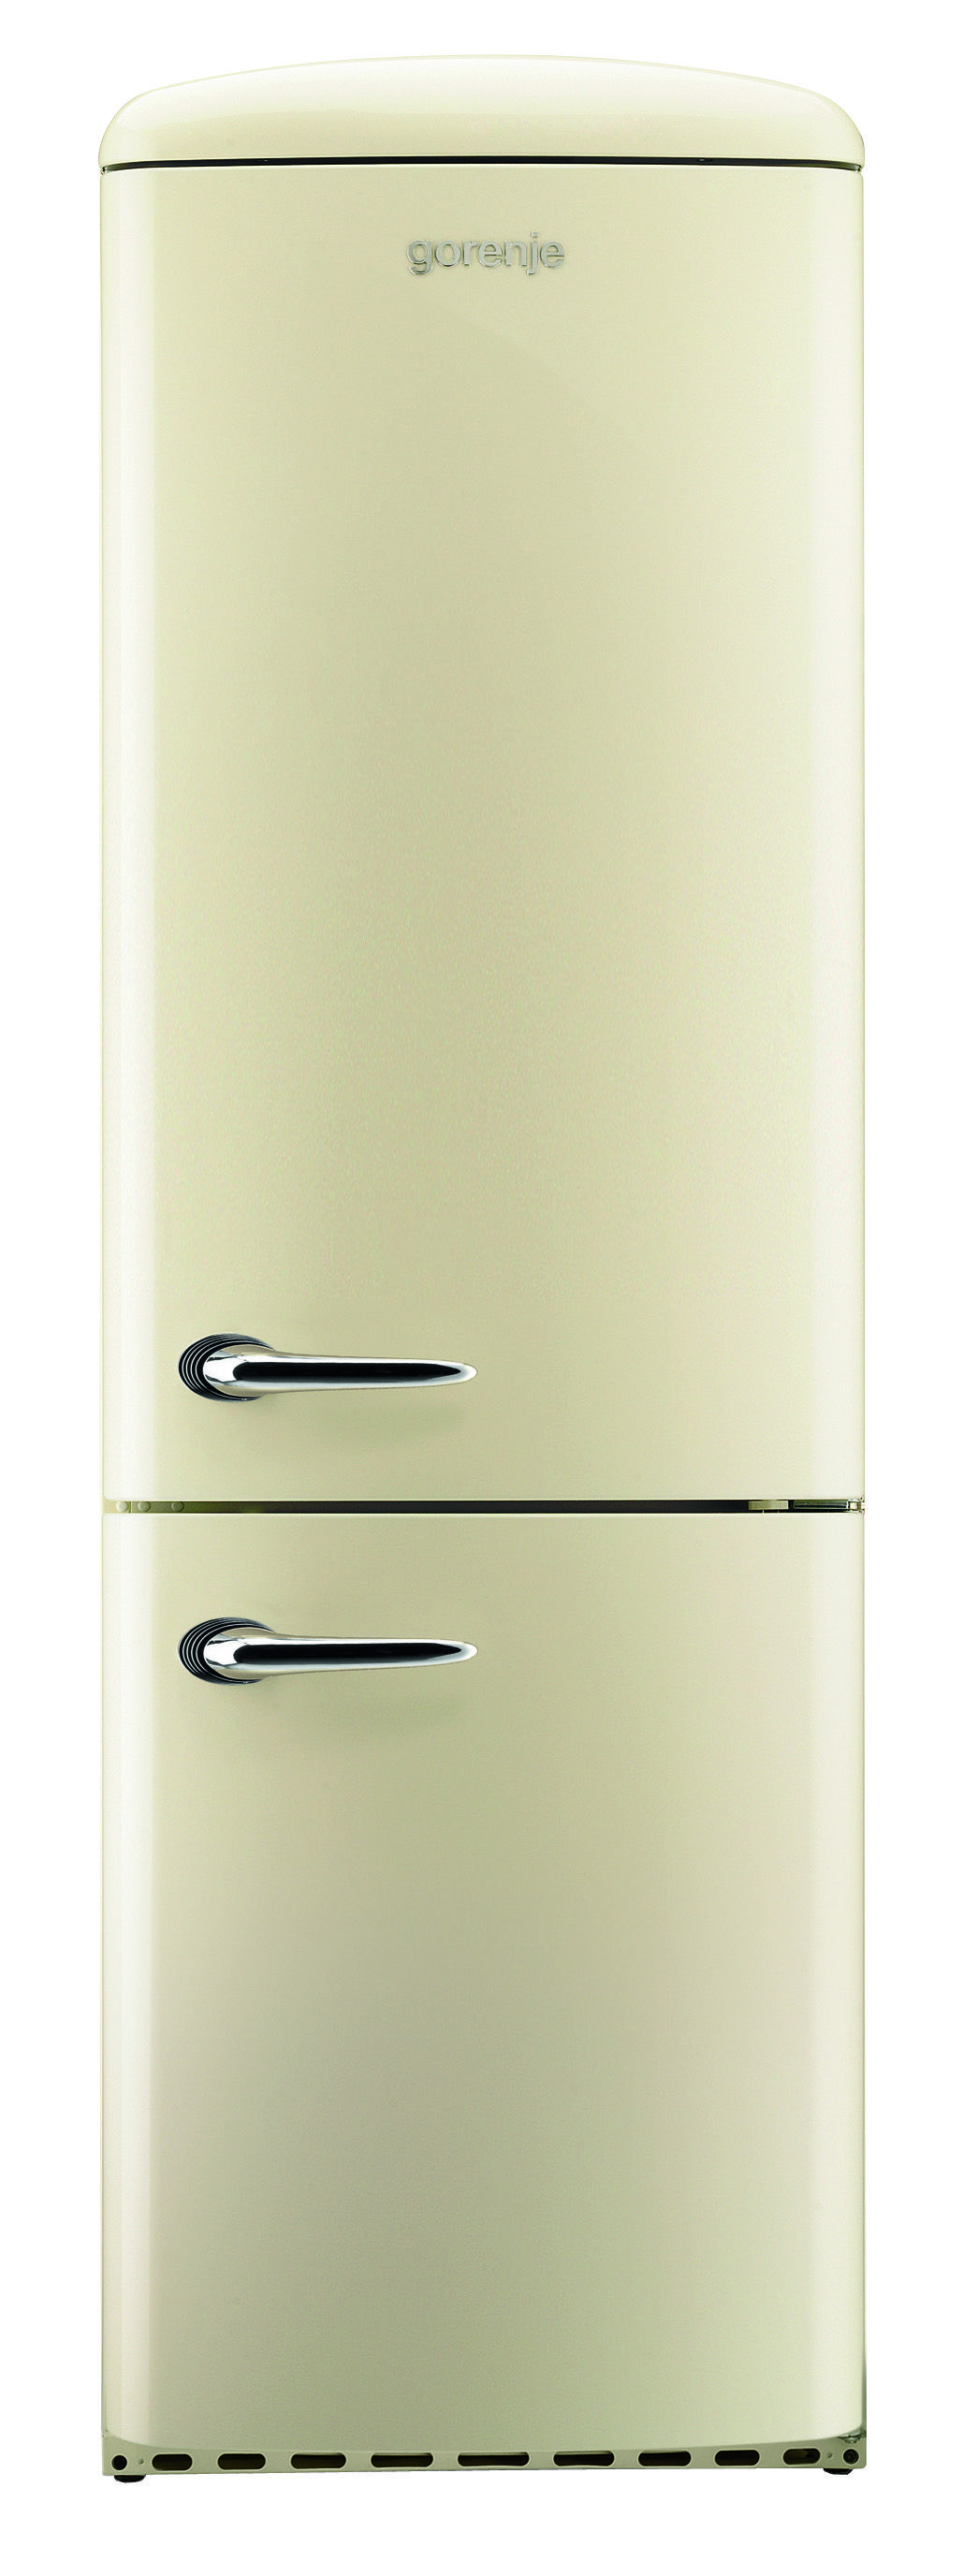 Uncategorized Bush Kitchen Appliances bush bsff60 retro frost free fridge freezer cream at homebase find this pin and more on a room kitchen